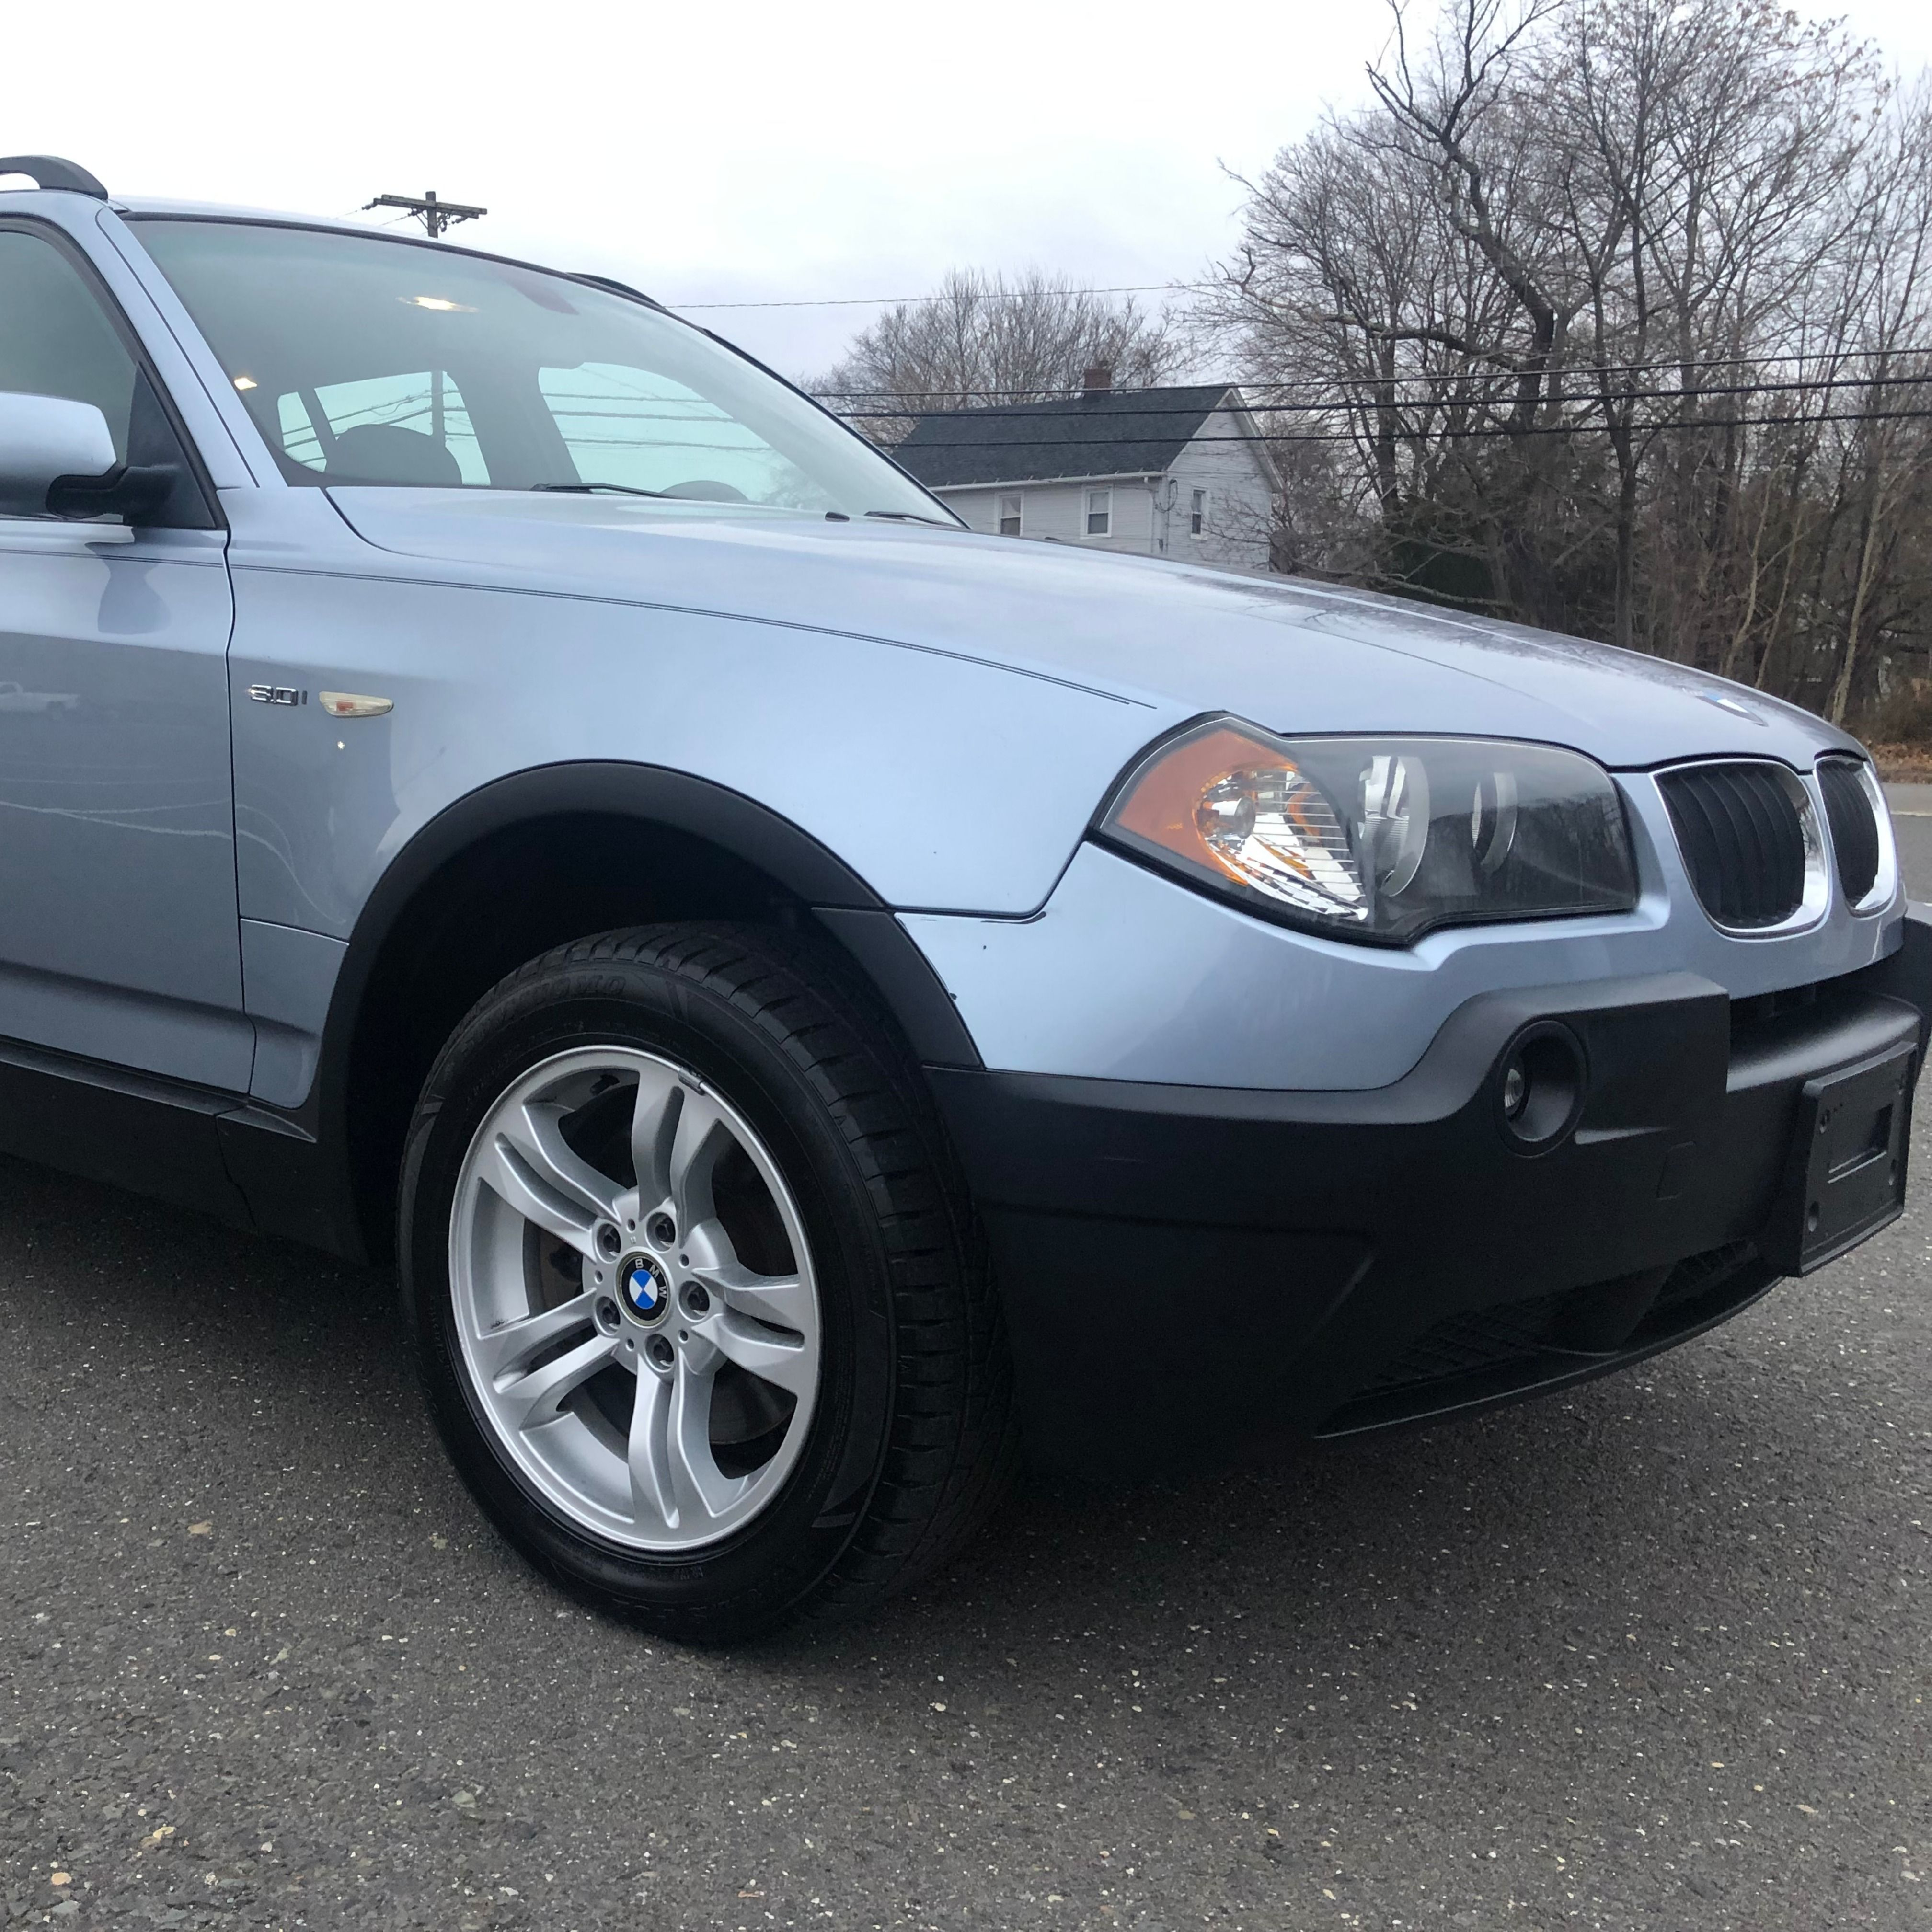 Awd Heated Leather Seats Runs And Drives Smooth Panoramic Sunroof Tires Are In Good Condition Nice Suv With Good Gas Mileage 732 484 Best Gas Mileage Bmw X3 Used Cars